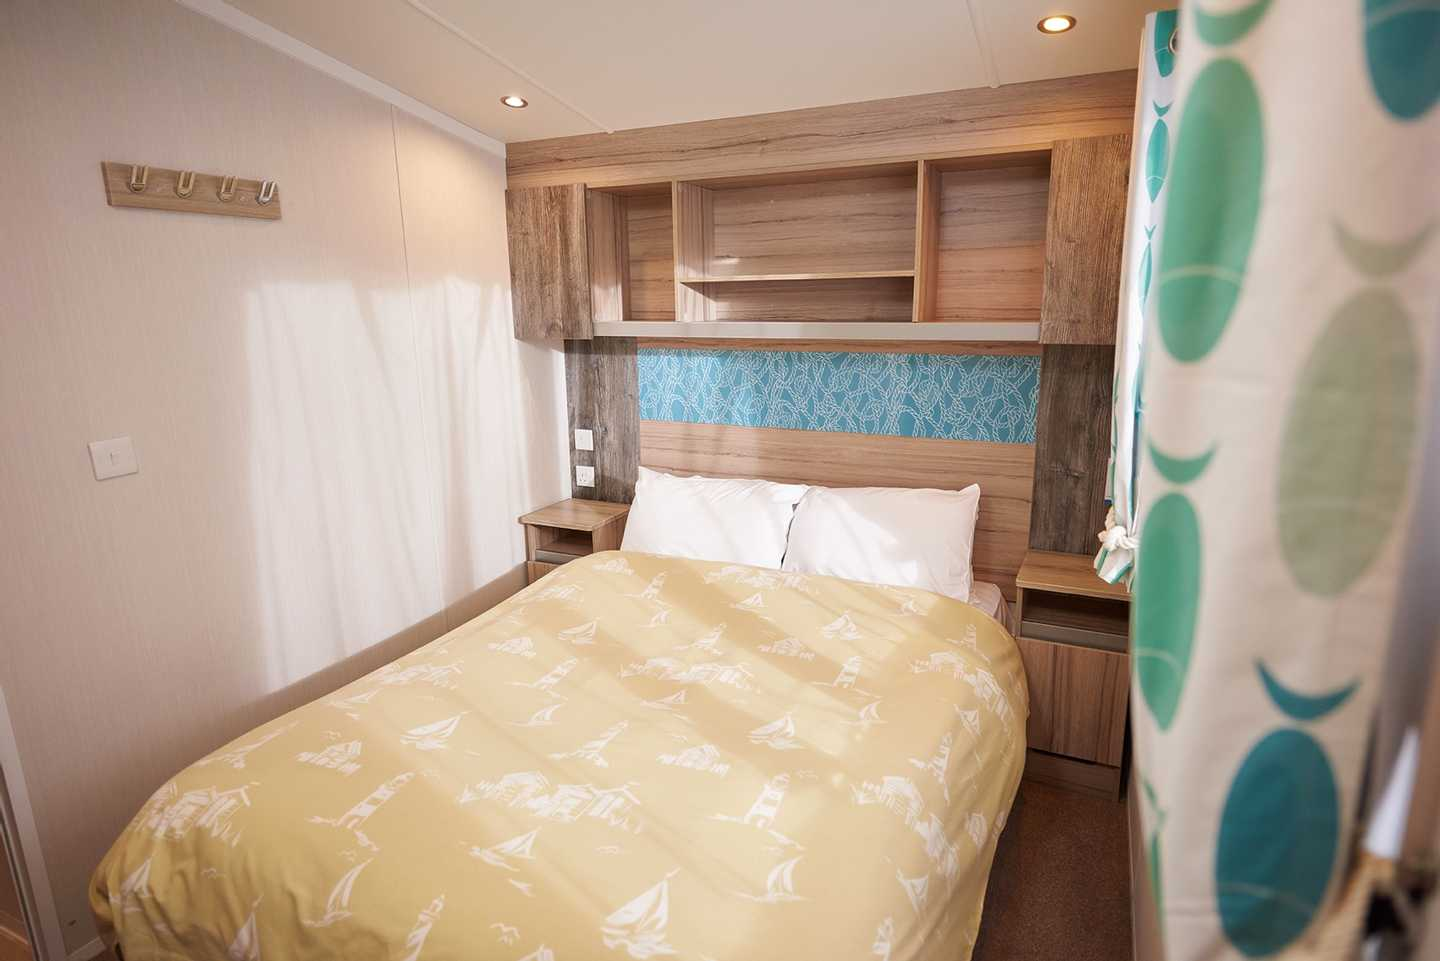 A newer Deluxe caravan master bedroom with double bed and side tables